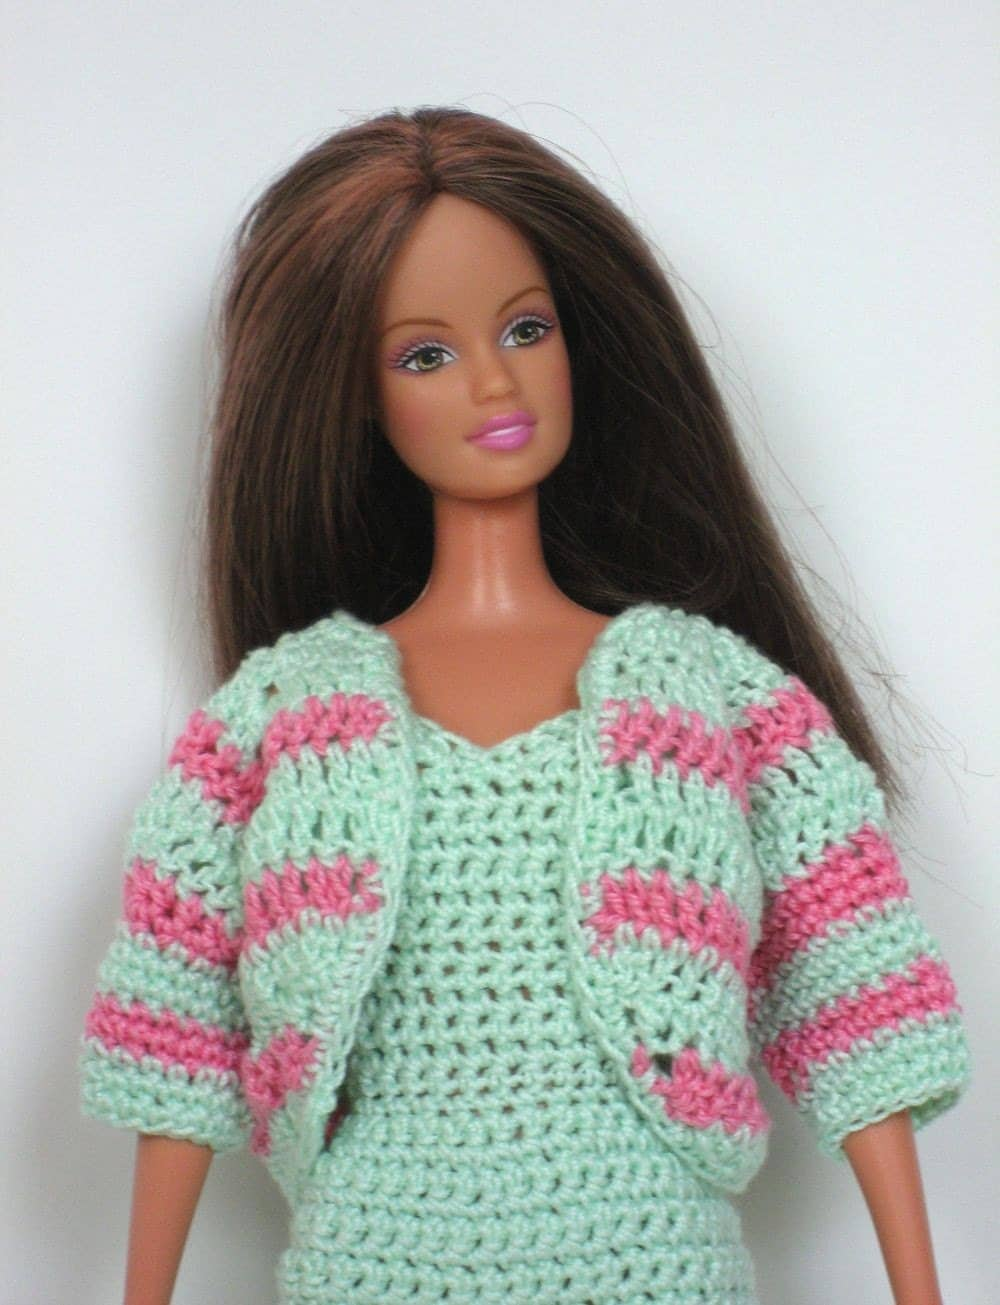 BARBIE CROCHET DOLL FASHION FREE - Crochet   Learn How to Crochet